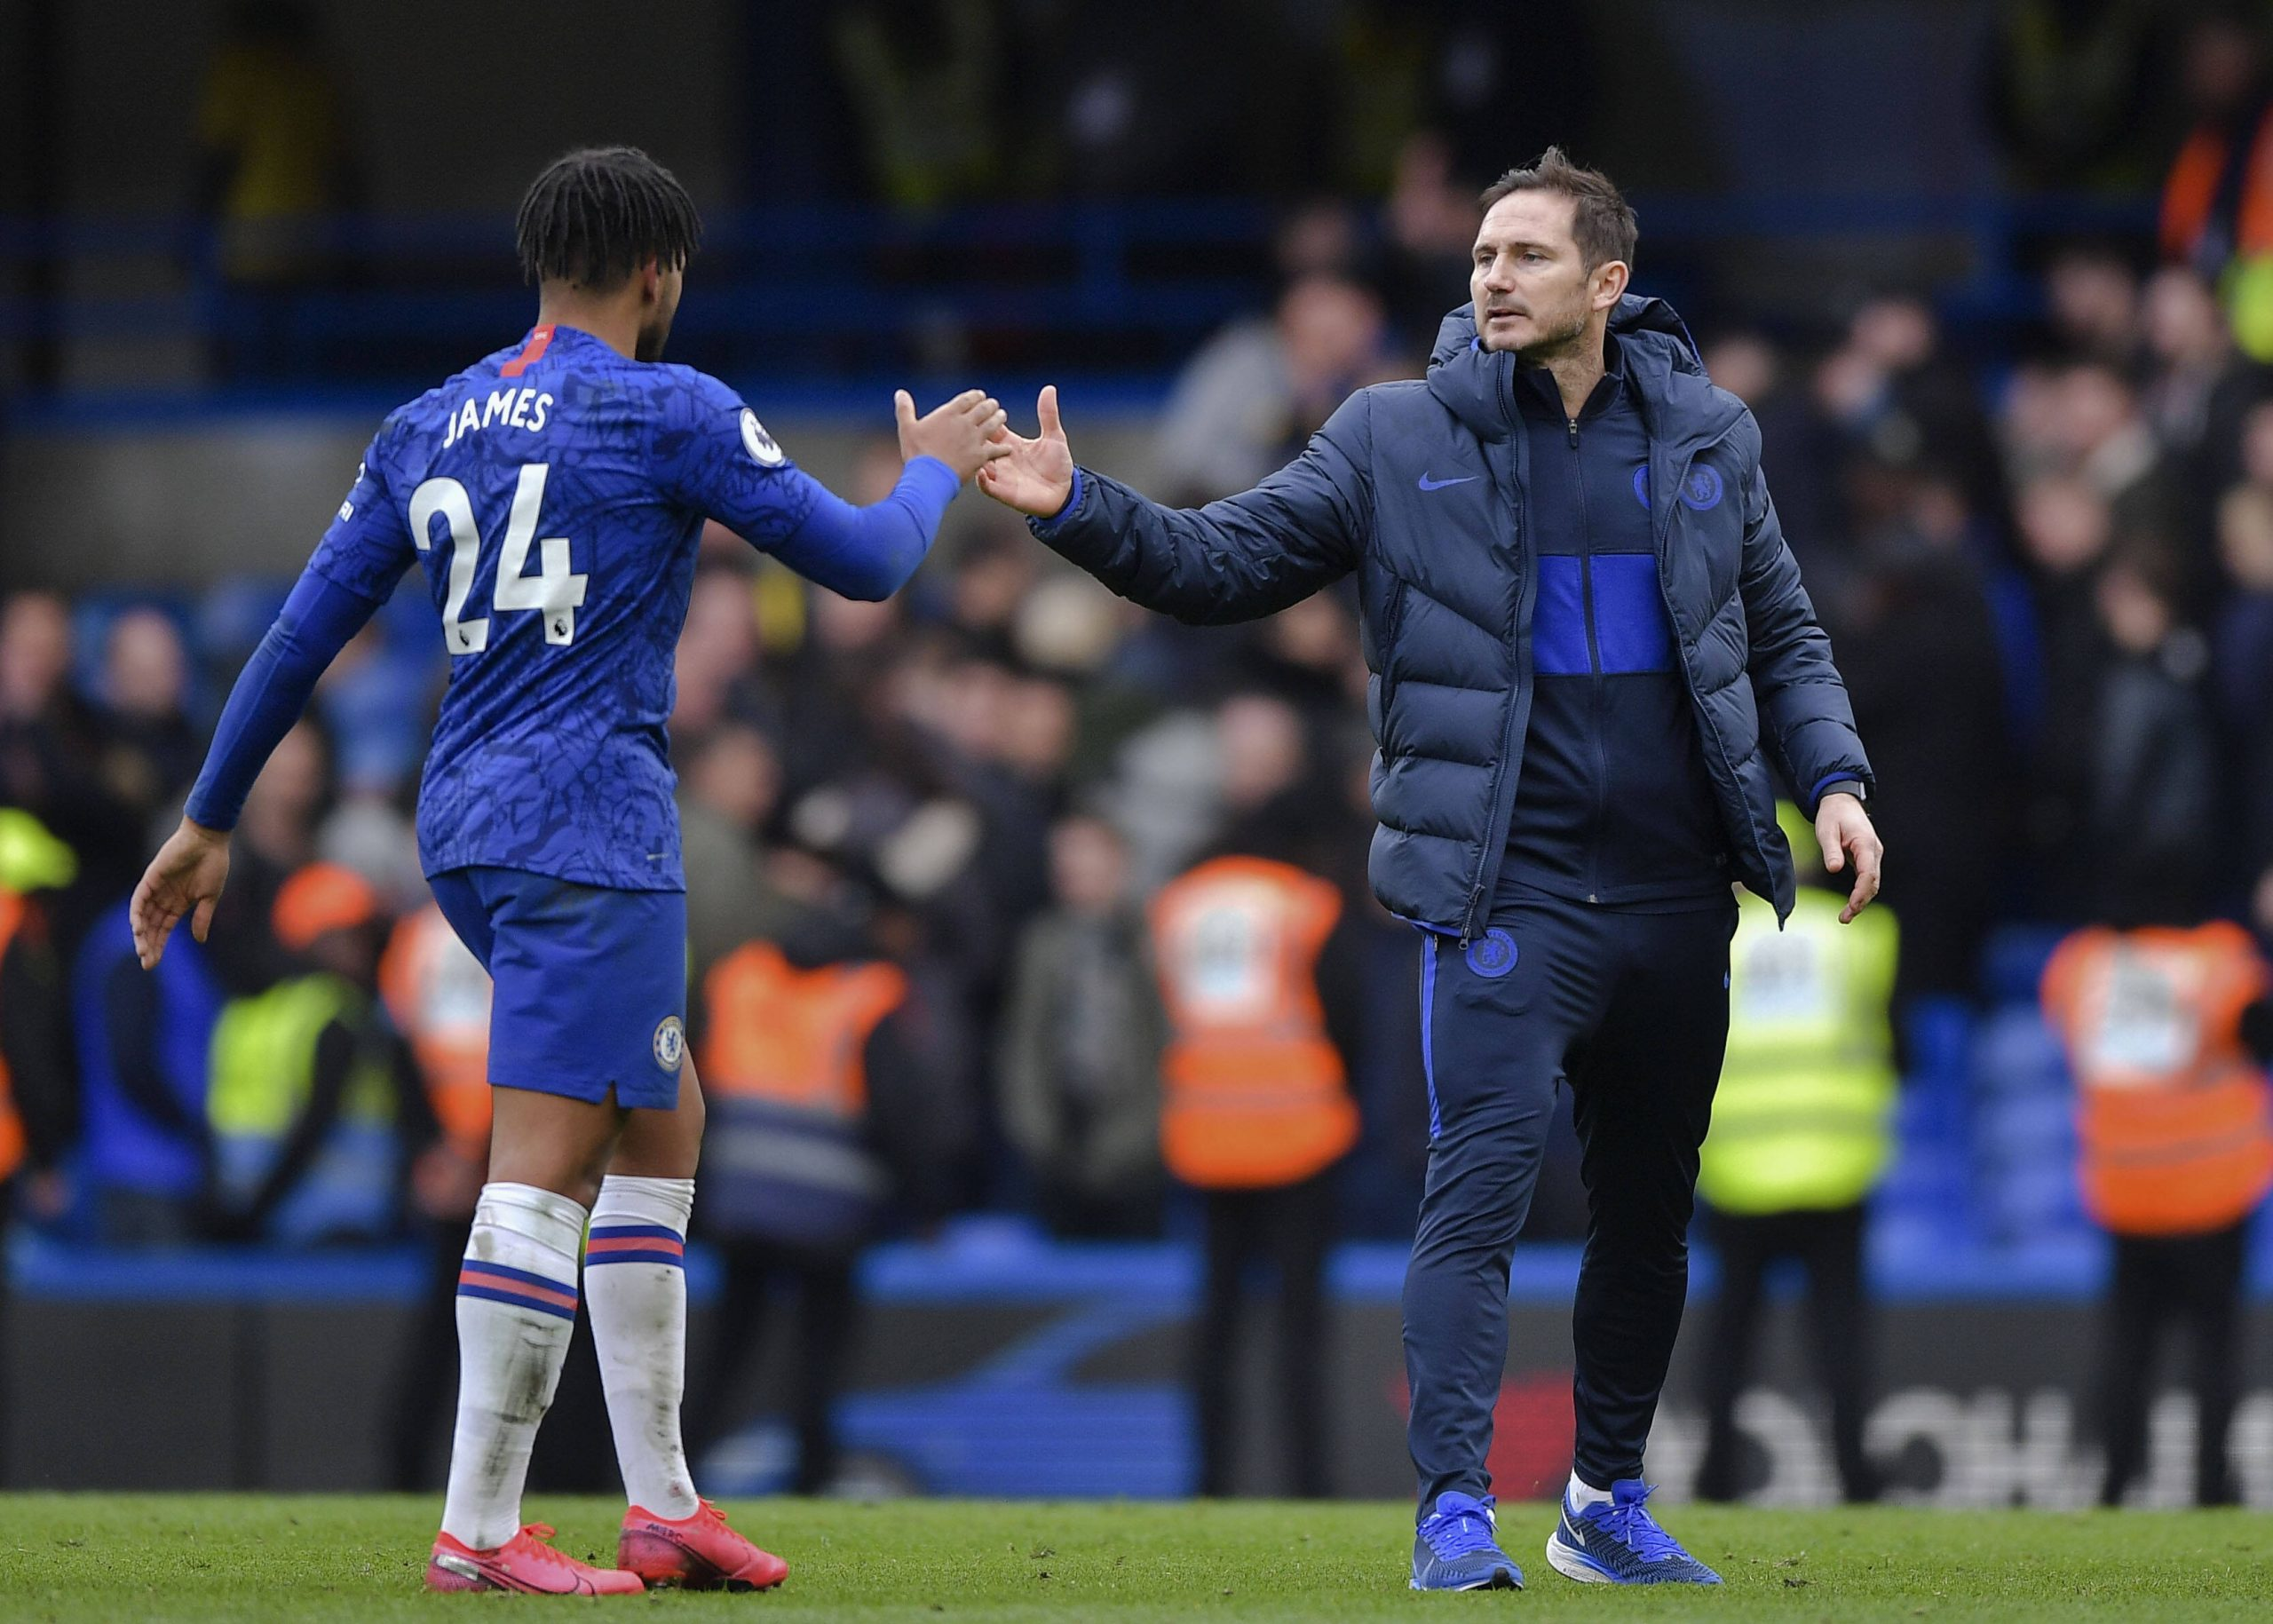 Reece James came to the defence of manager Frank Lampard after disastrous draw against Aston Villa. (GETTY Images)